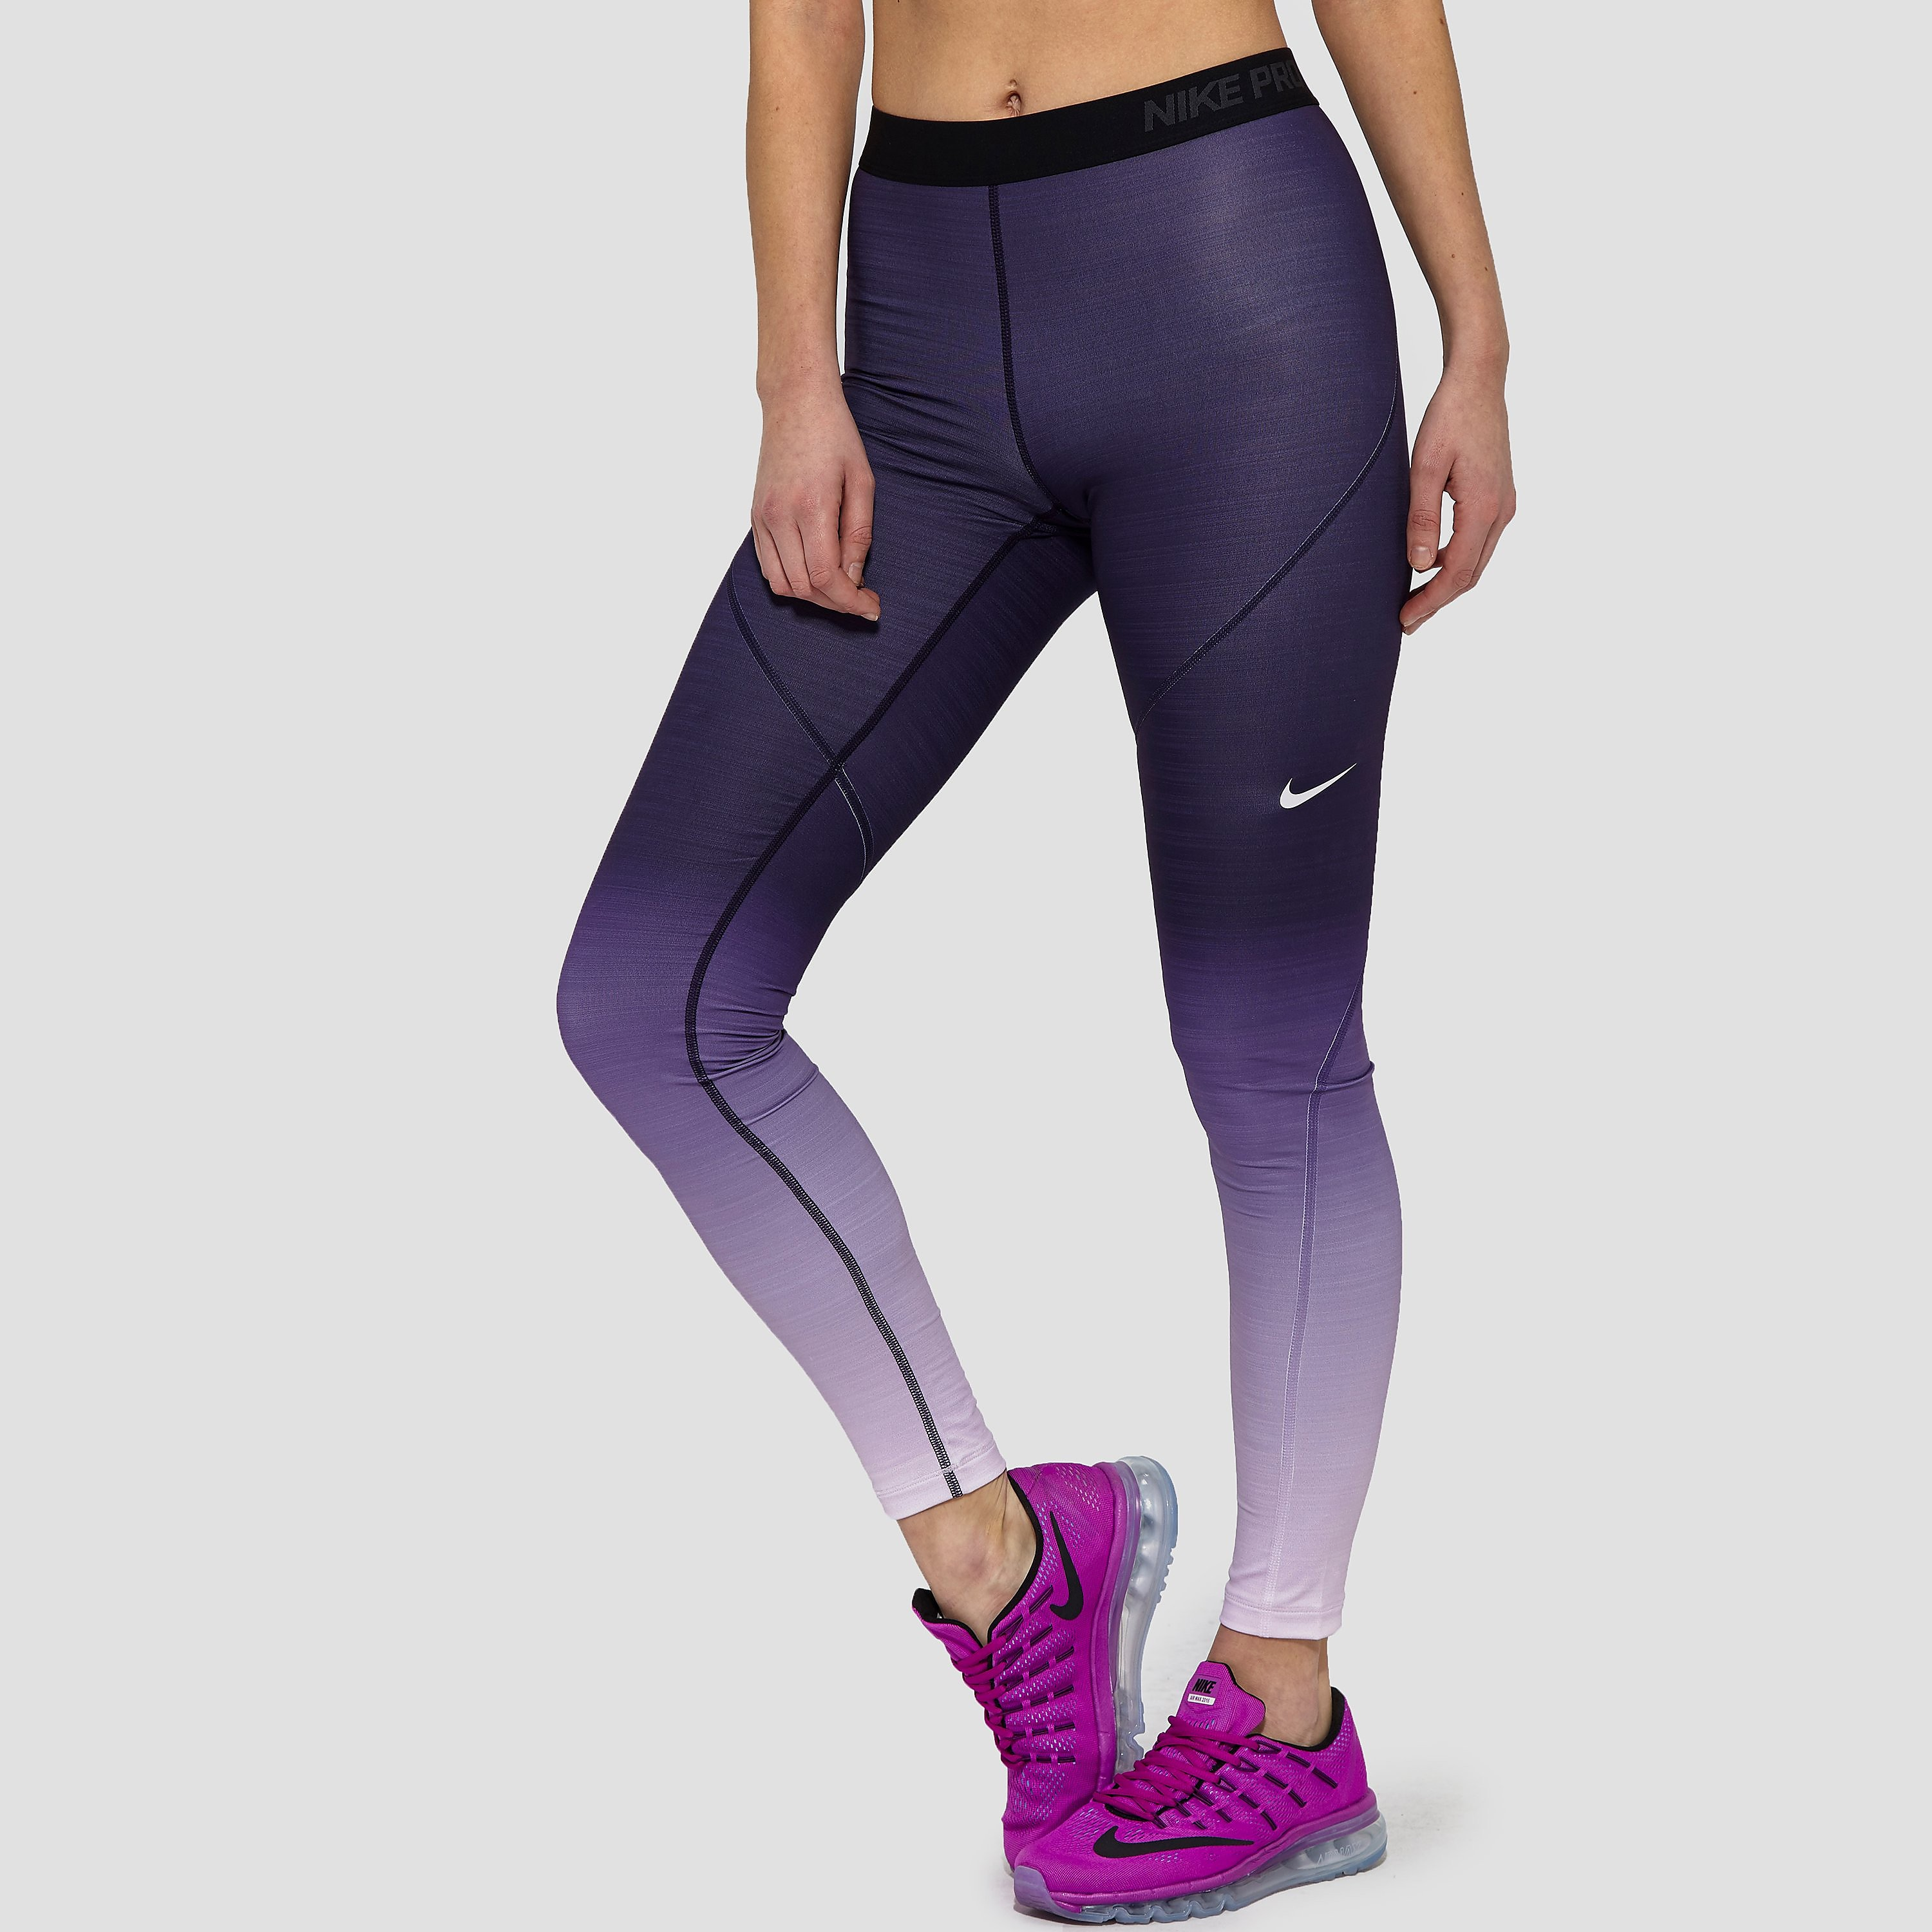 Nike Women's Pro HyperWarm Training Tights